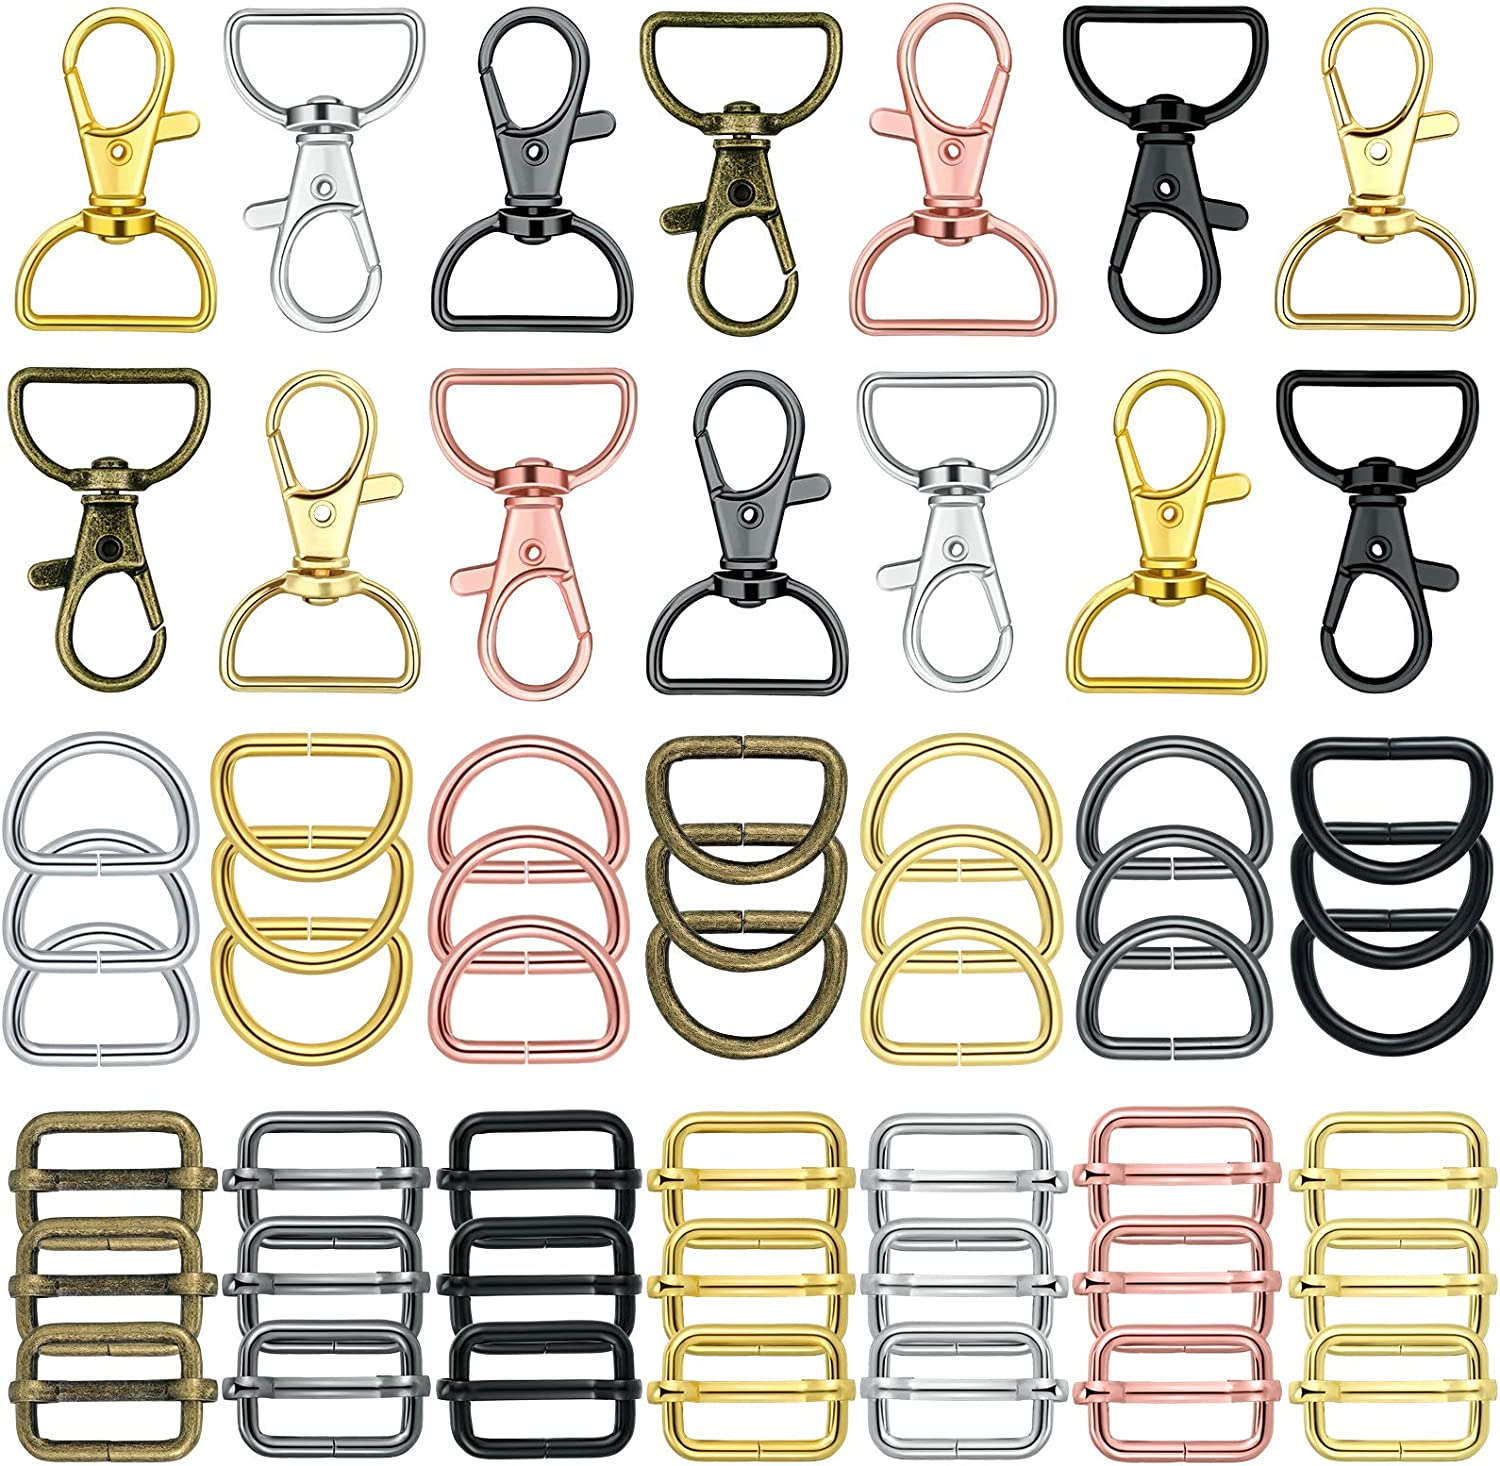 56 Pieces Keychain Hooks with D Rings Set Purse Hardware for Bag